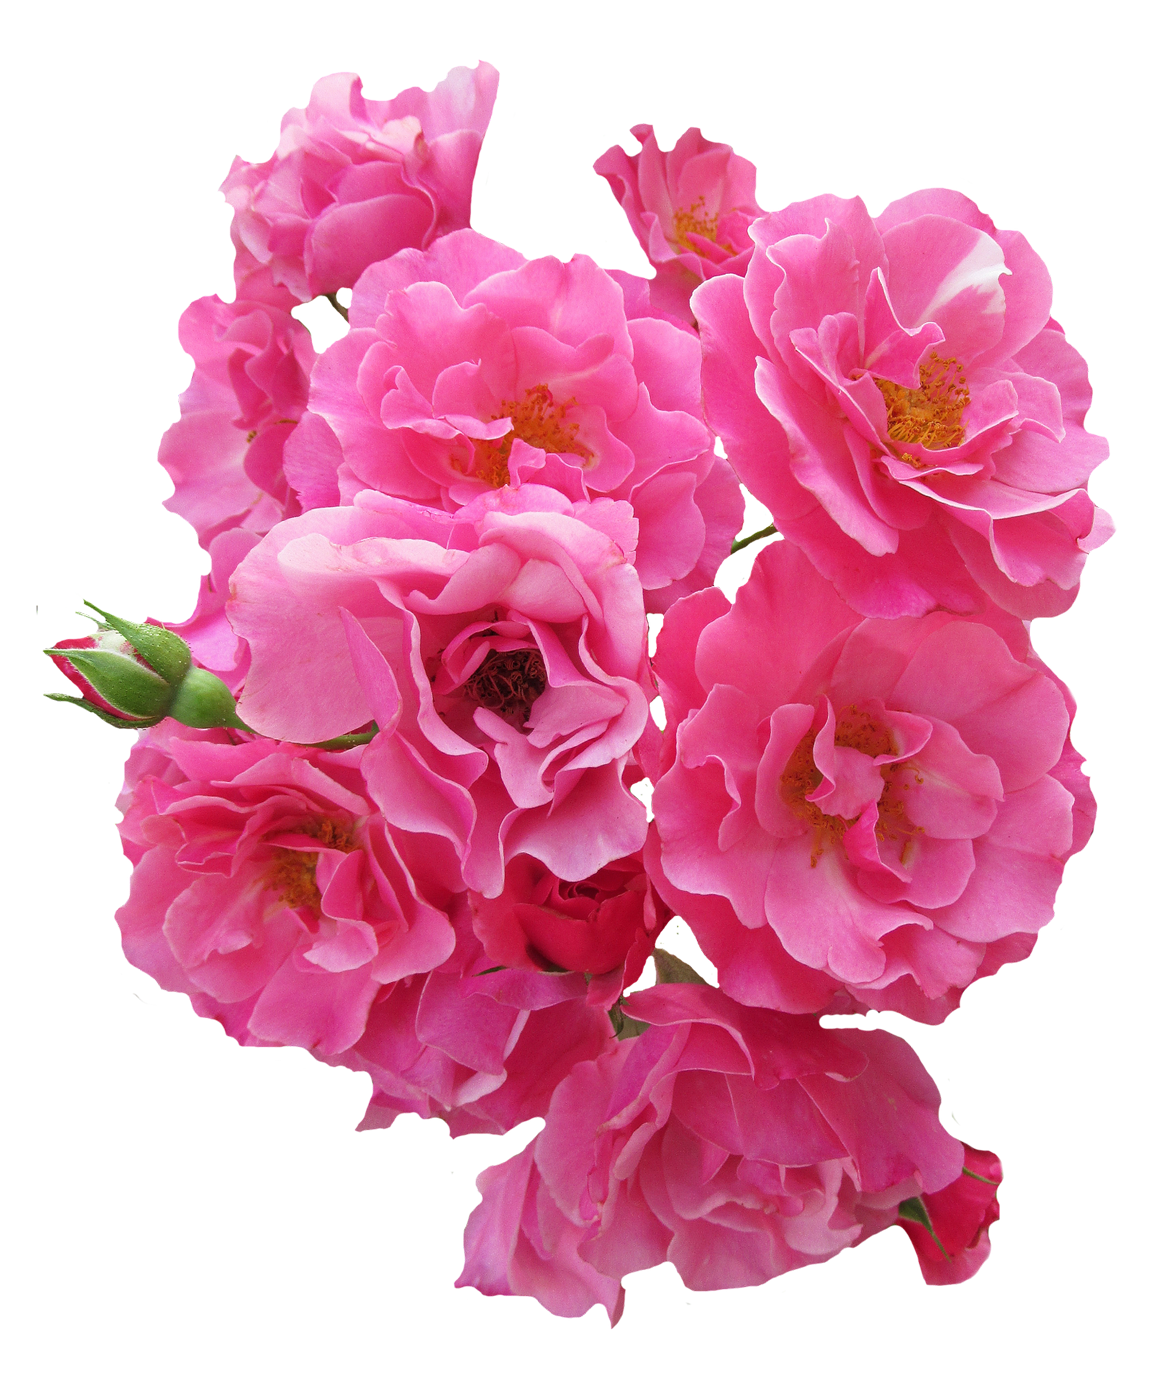 bunch pink rose flower image #8192